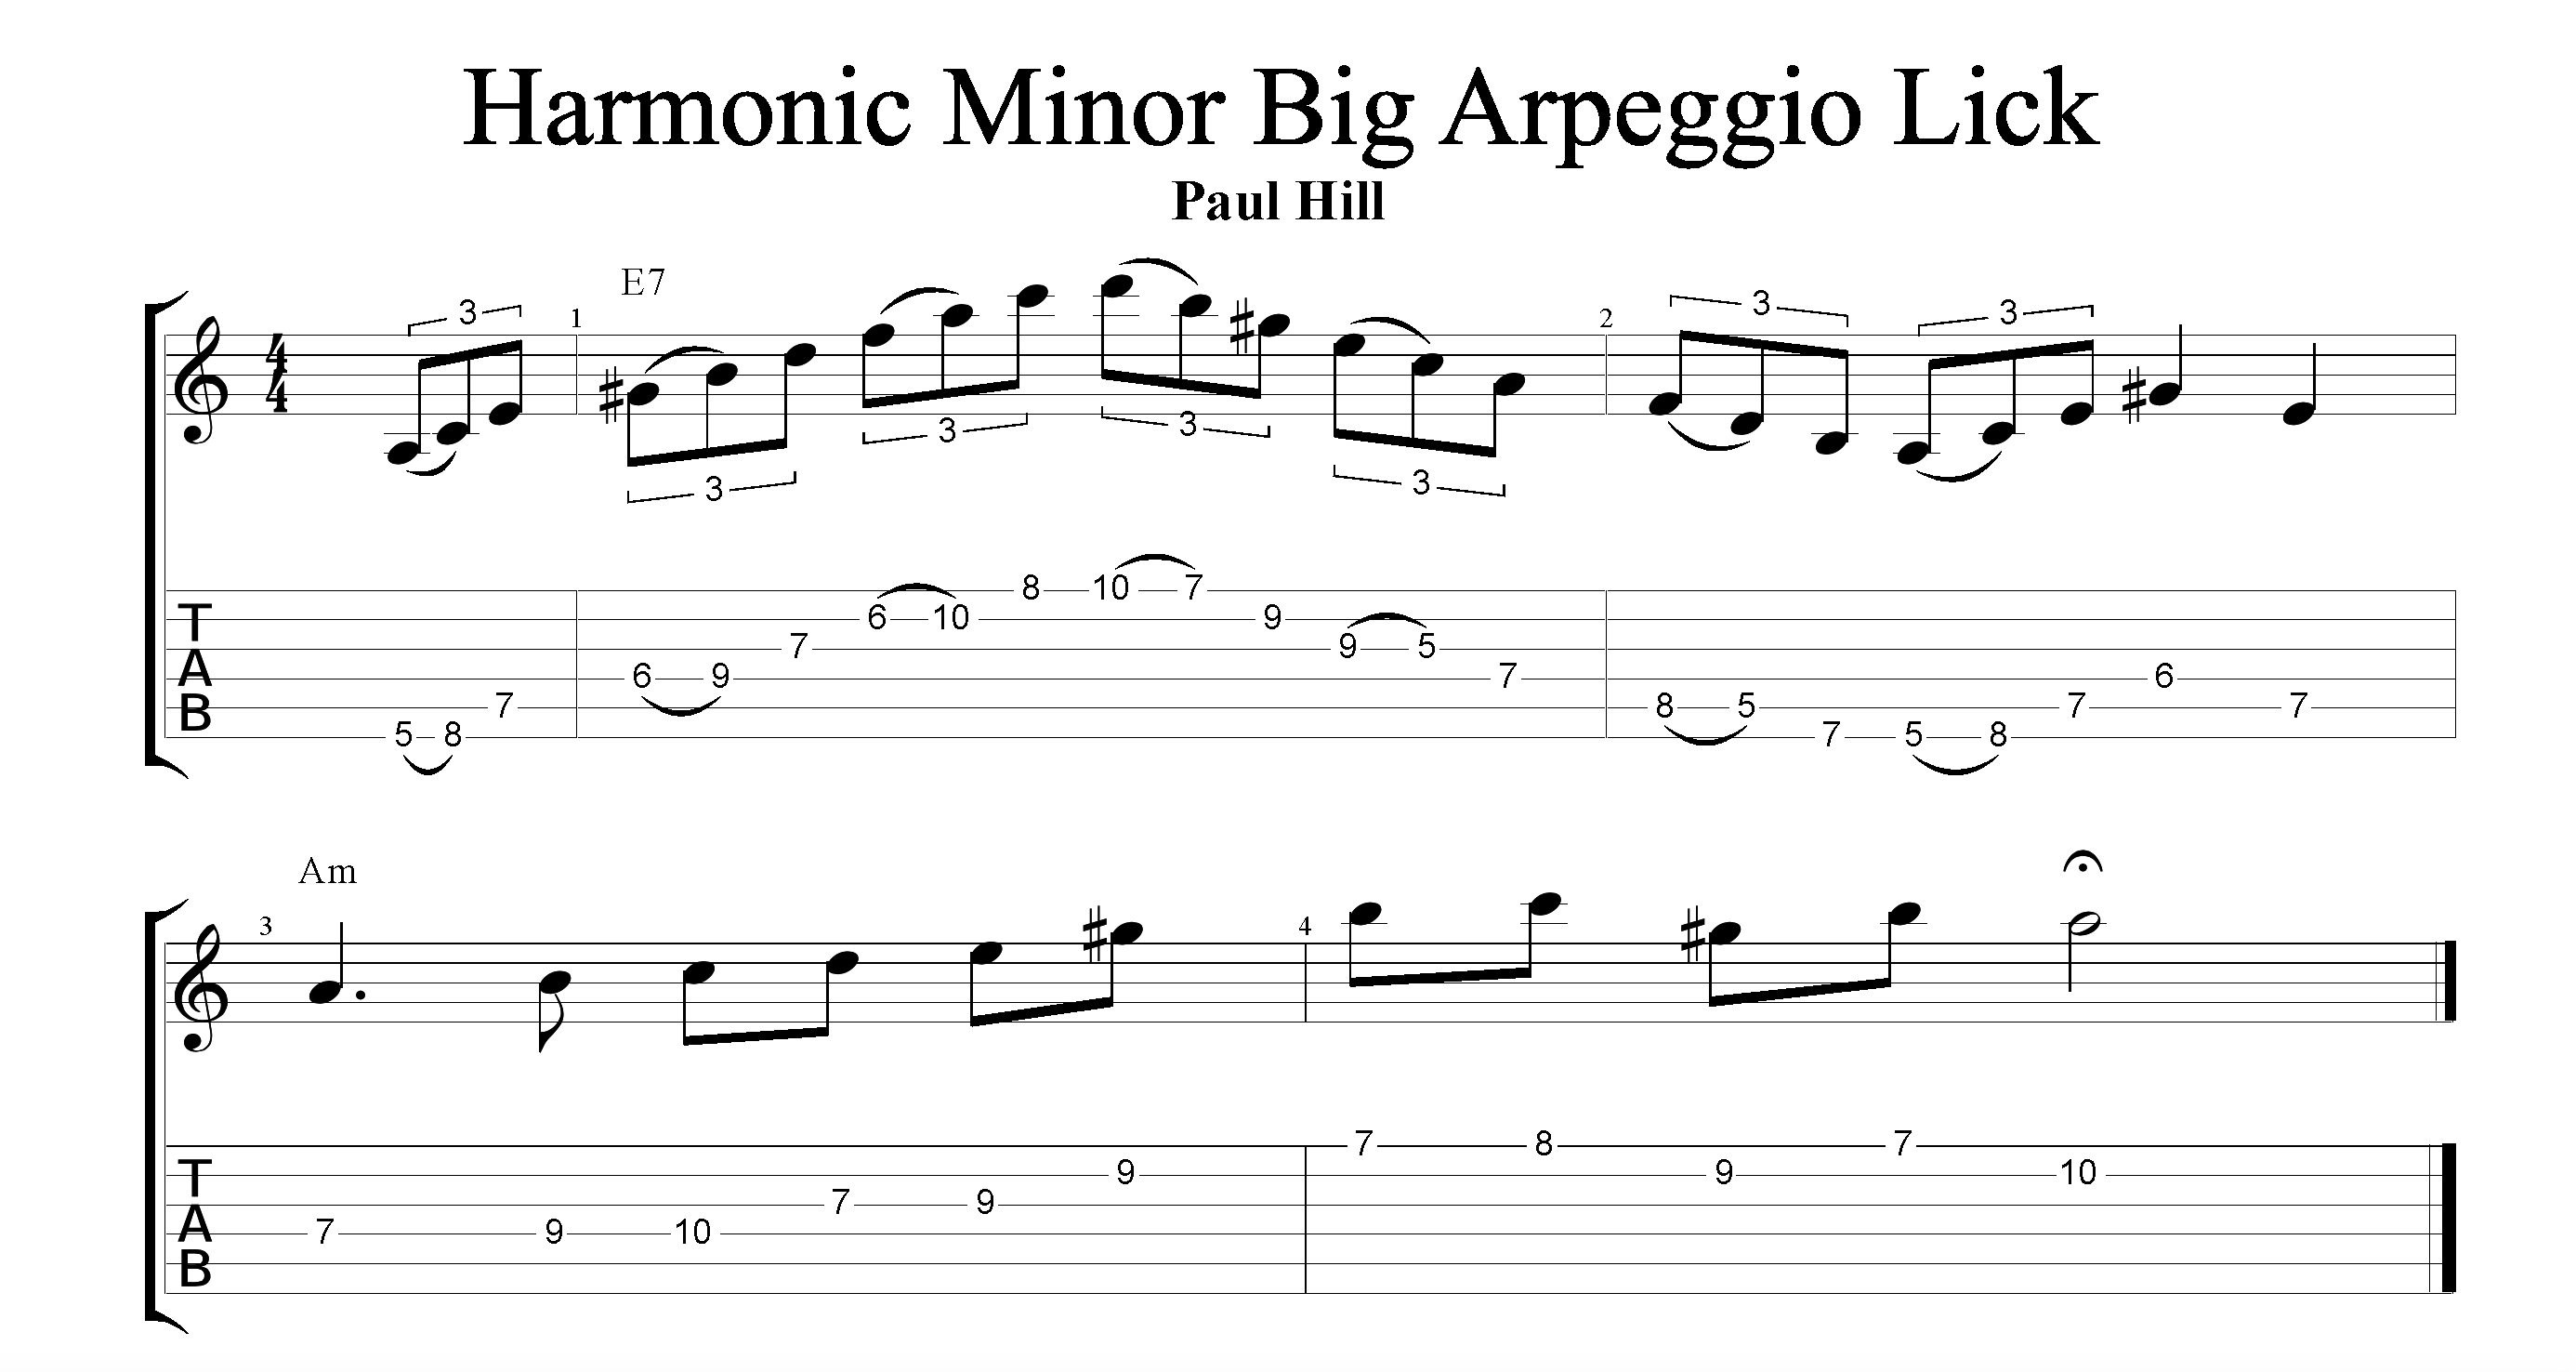 Harmonic Minor Big Arpeggio Lick